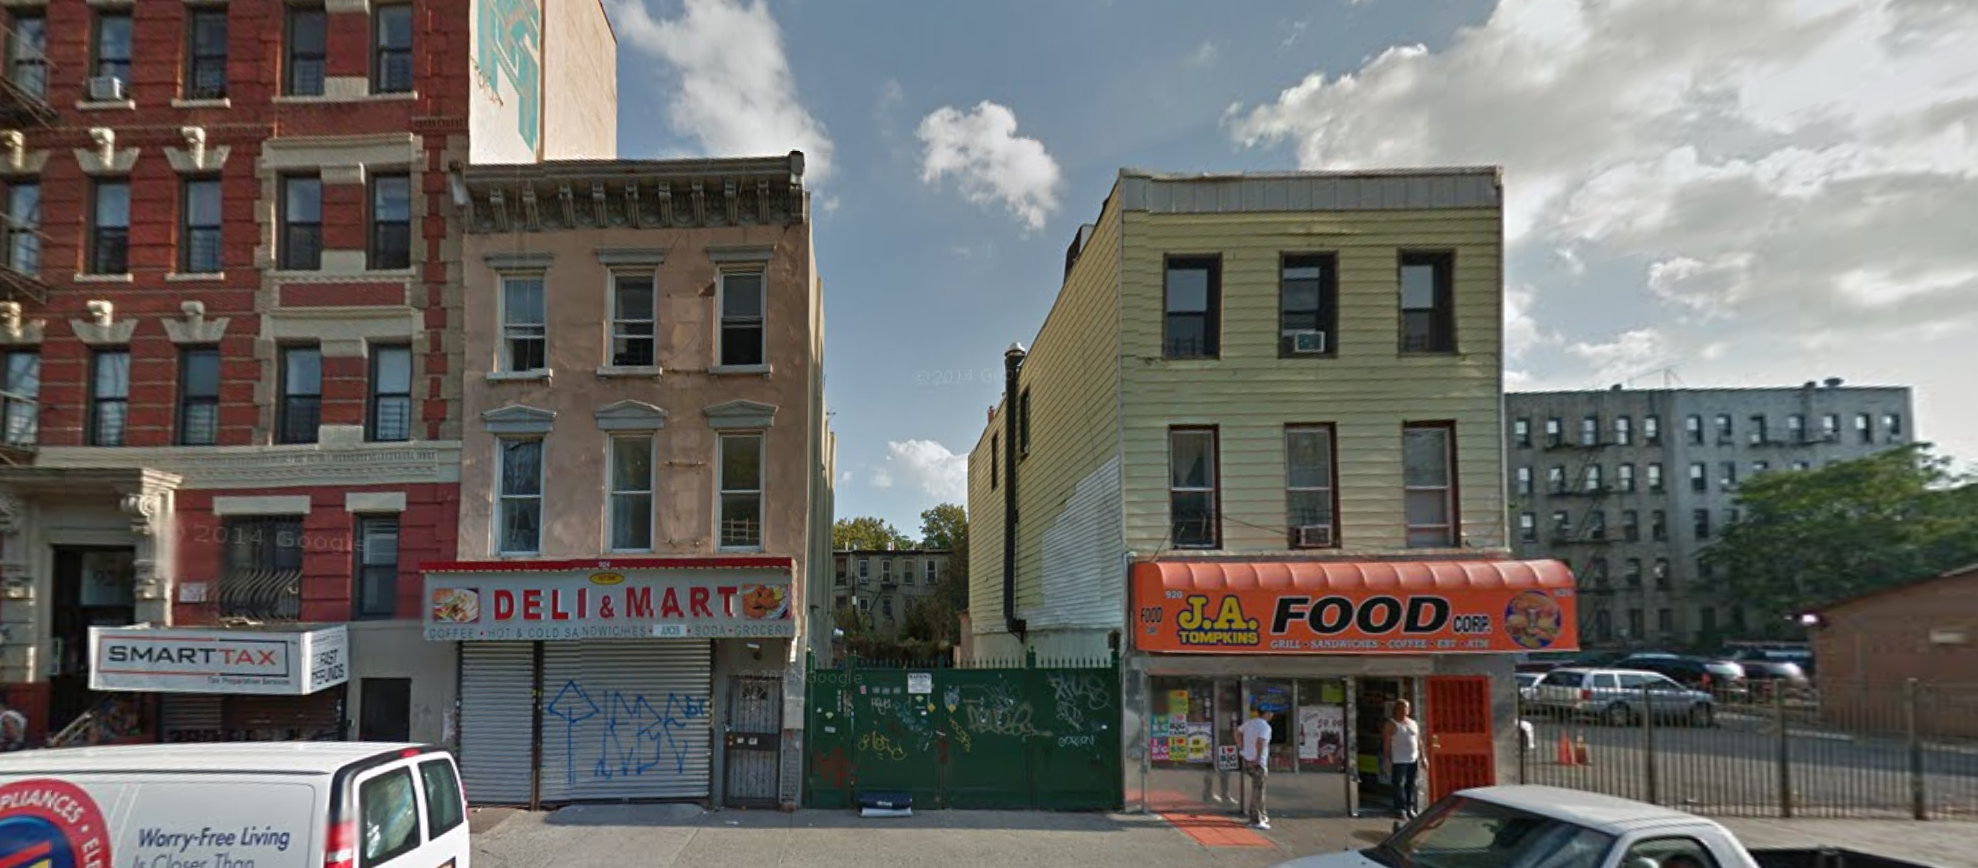 924 Myrtle Avenue, image via Google Maps